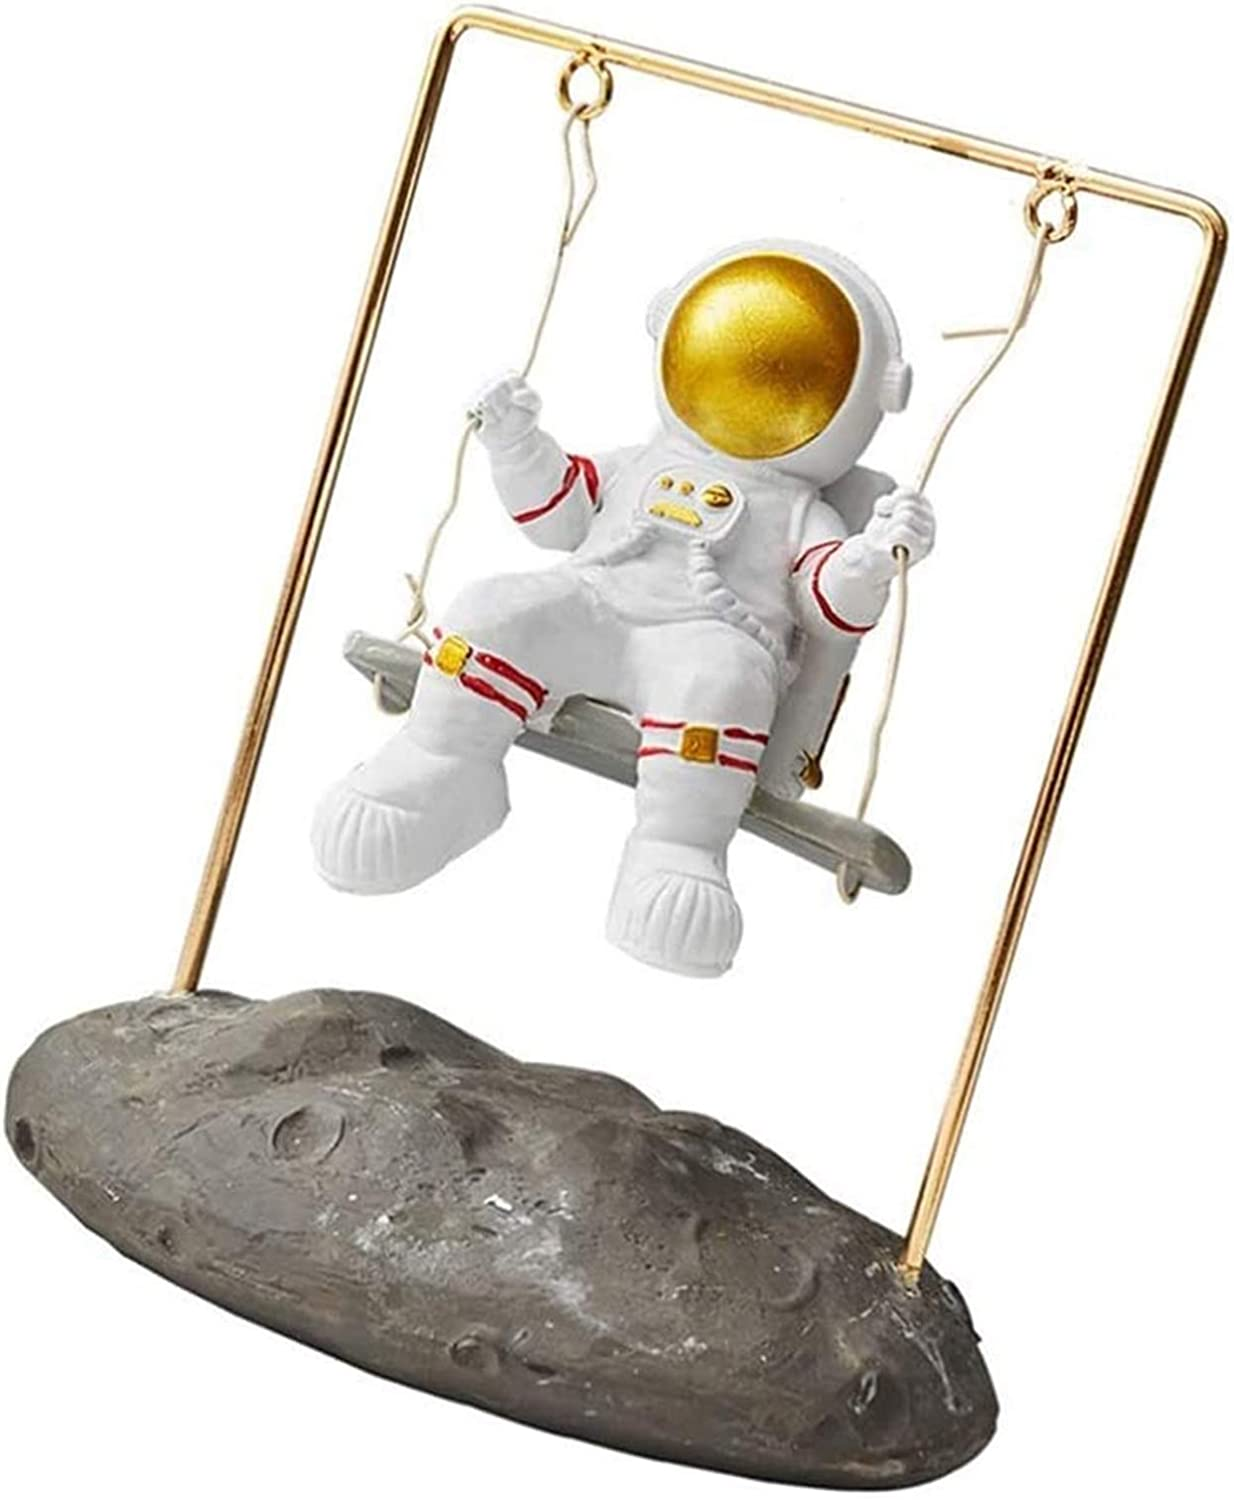 LQX Bombing free shipping Statue Astronaut Figurine And Sculpture Creat In a popularity Spaceman Swing